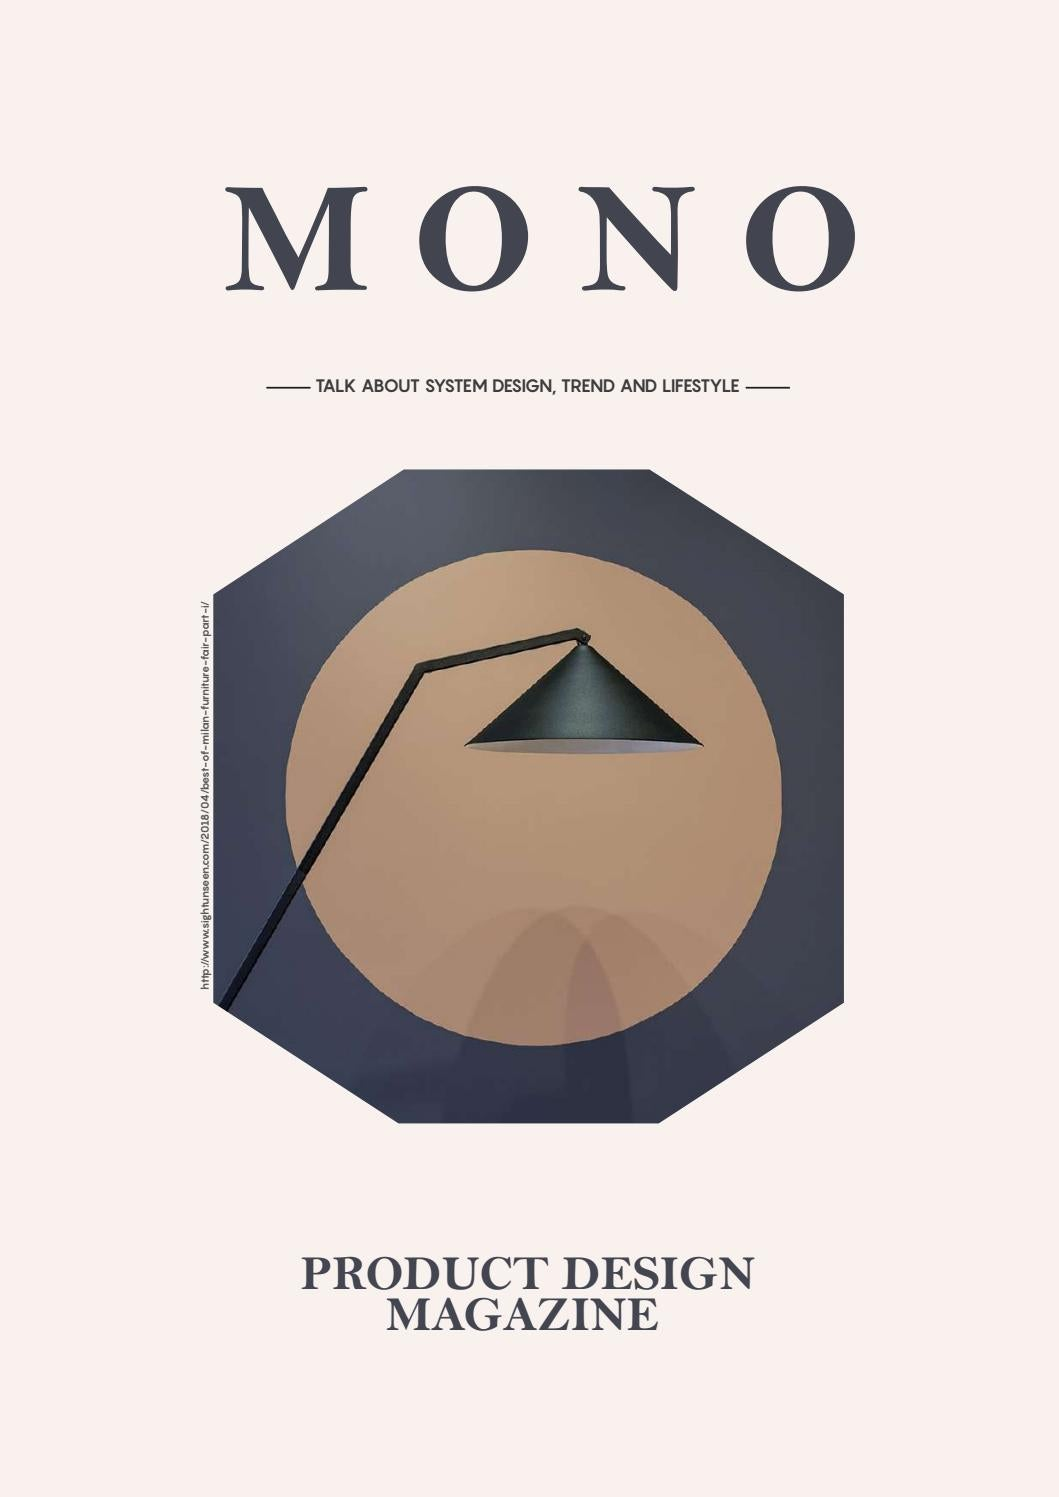 Mono Magazine The Design System May 2018 By Tias Sekar